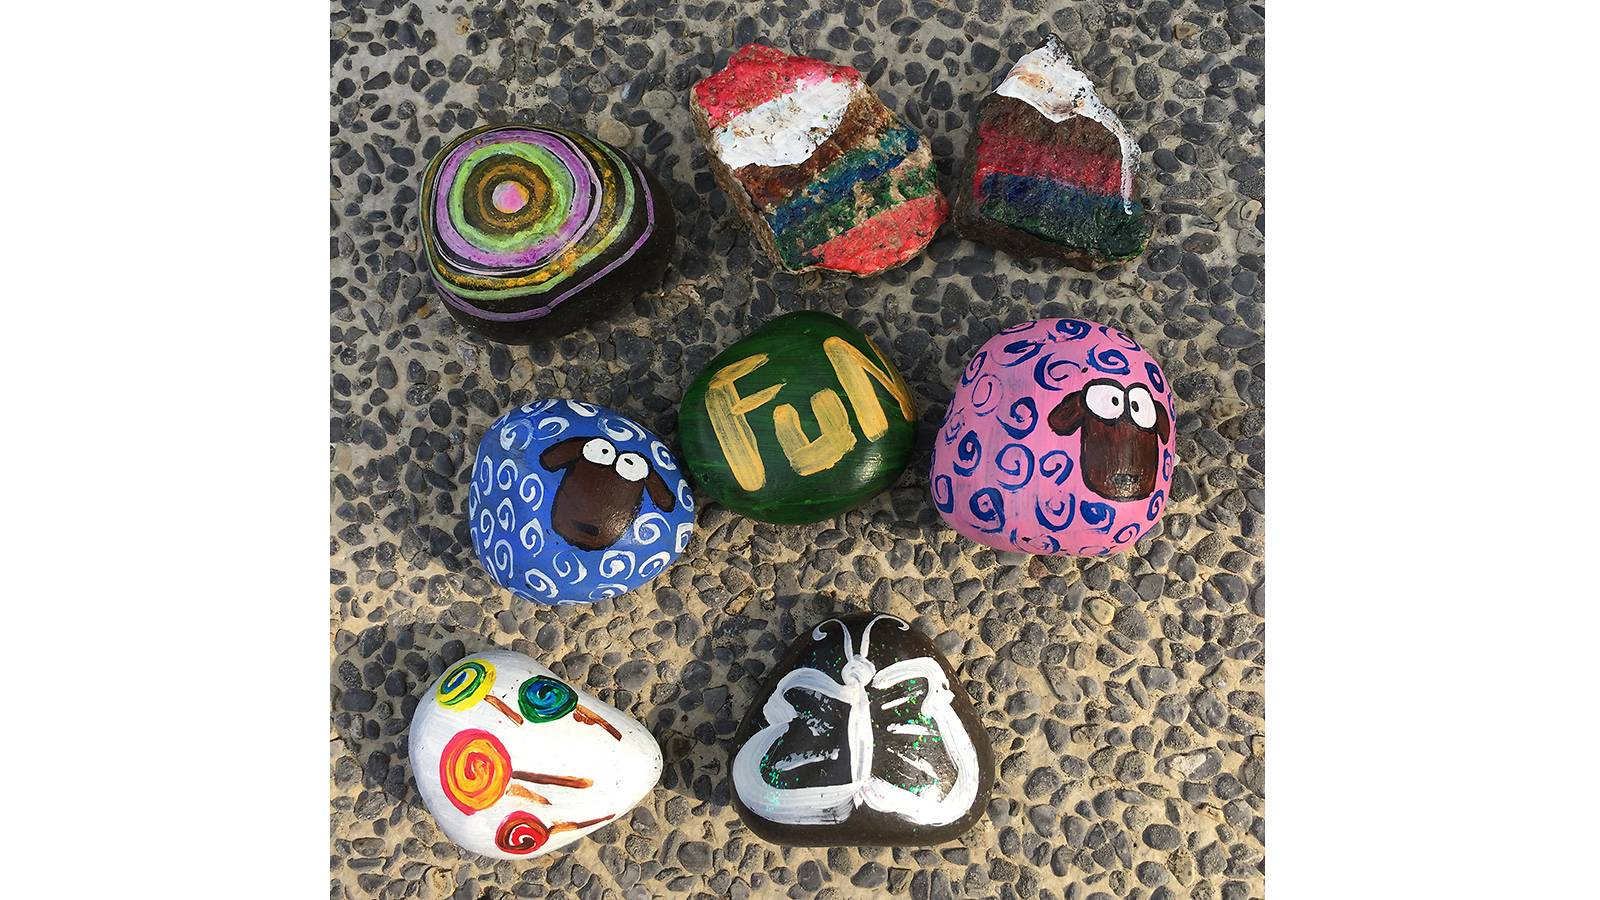 Kids-MUM-SAYS-We-hide-rocks-for-other-kids-to-find-r6